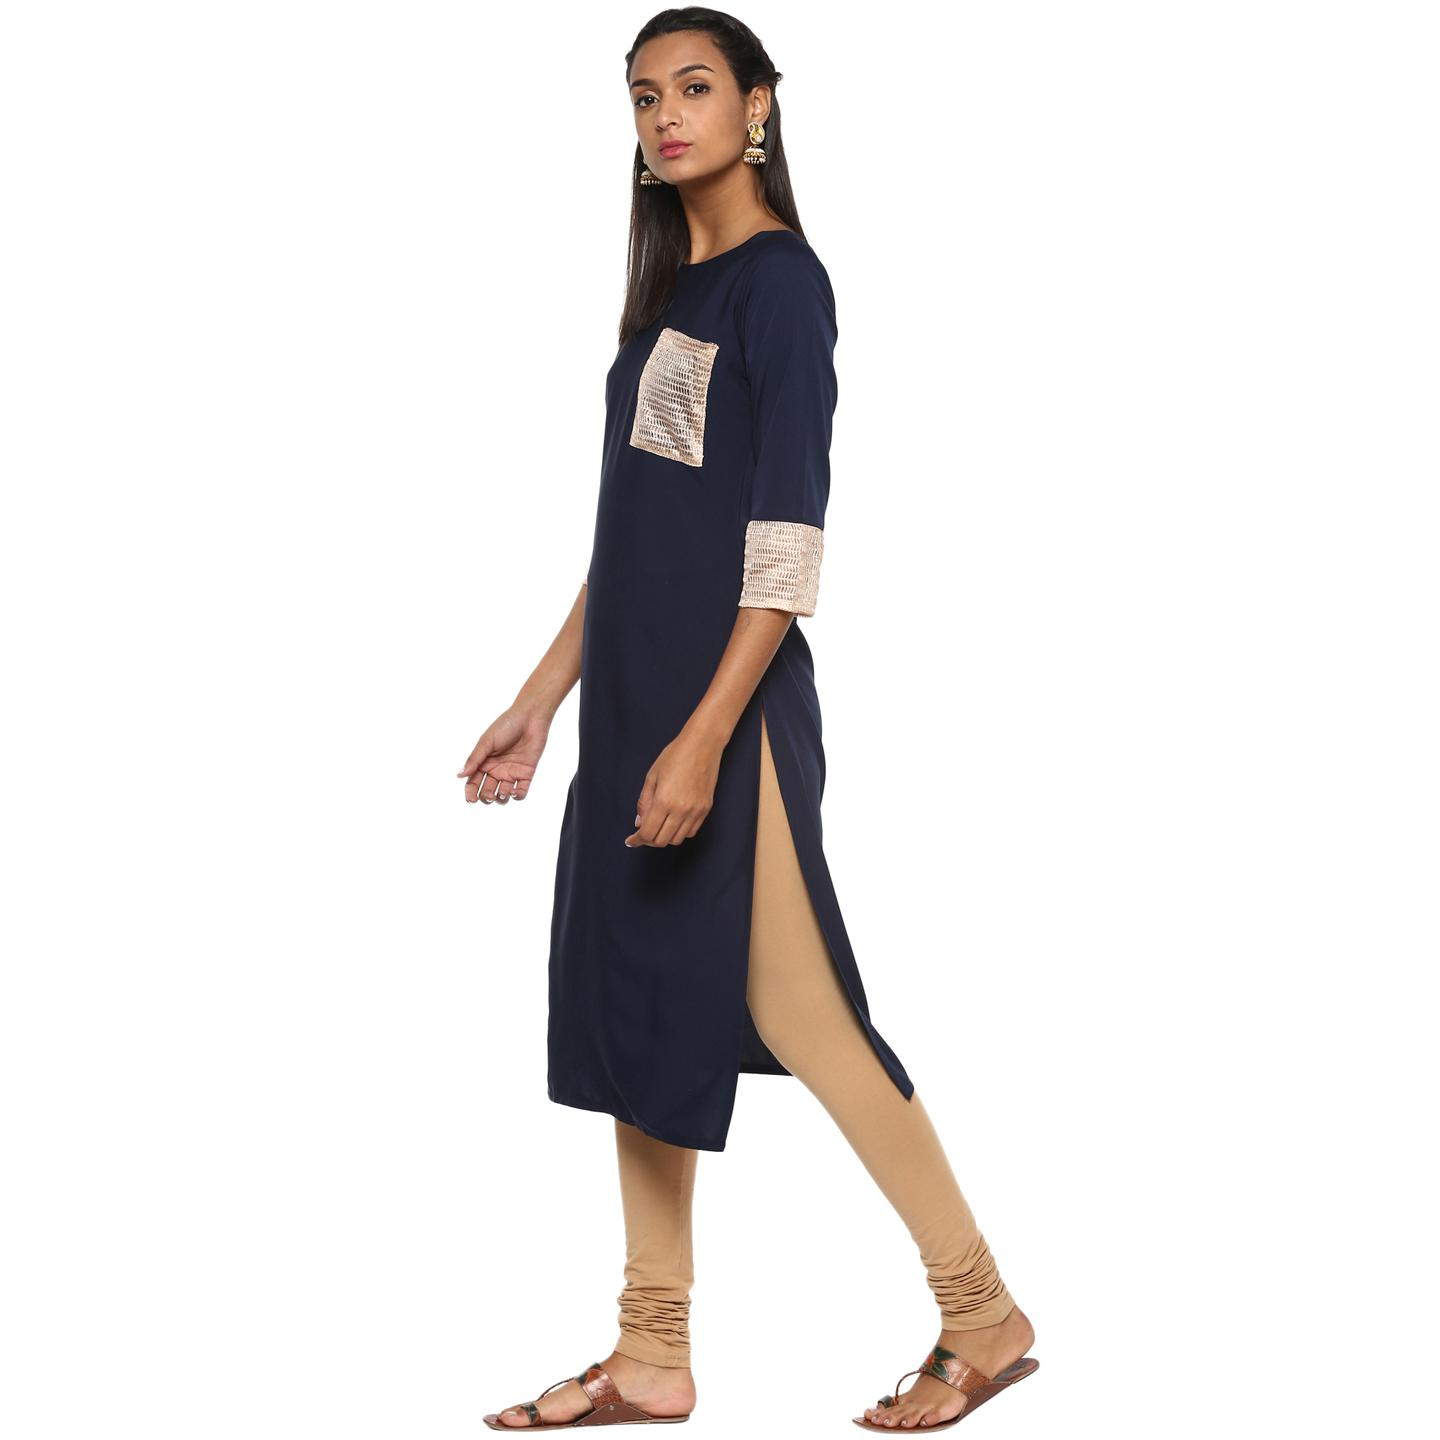 Ahalyaa - Women's Blue Colored Casual Wear Solid Crepe Kurti